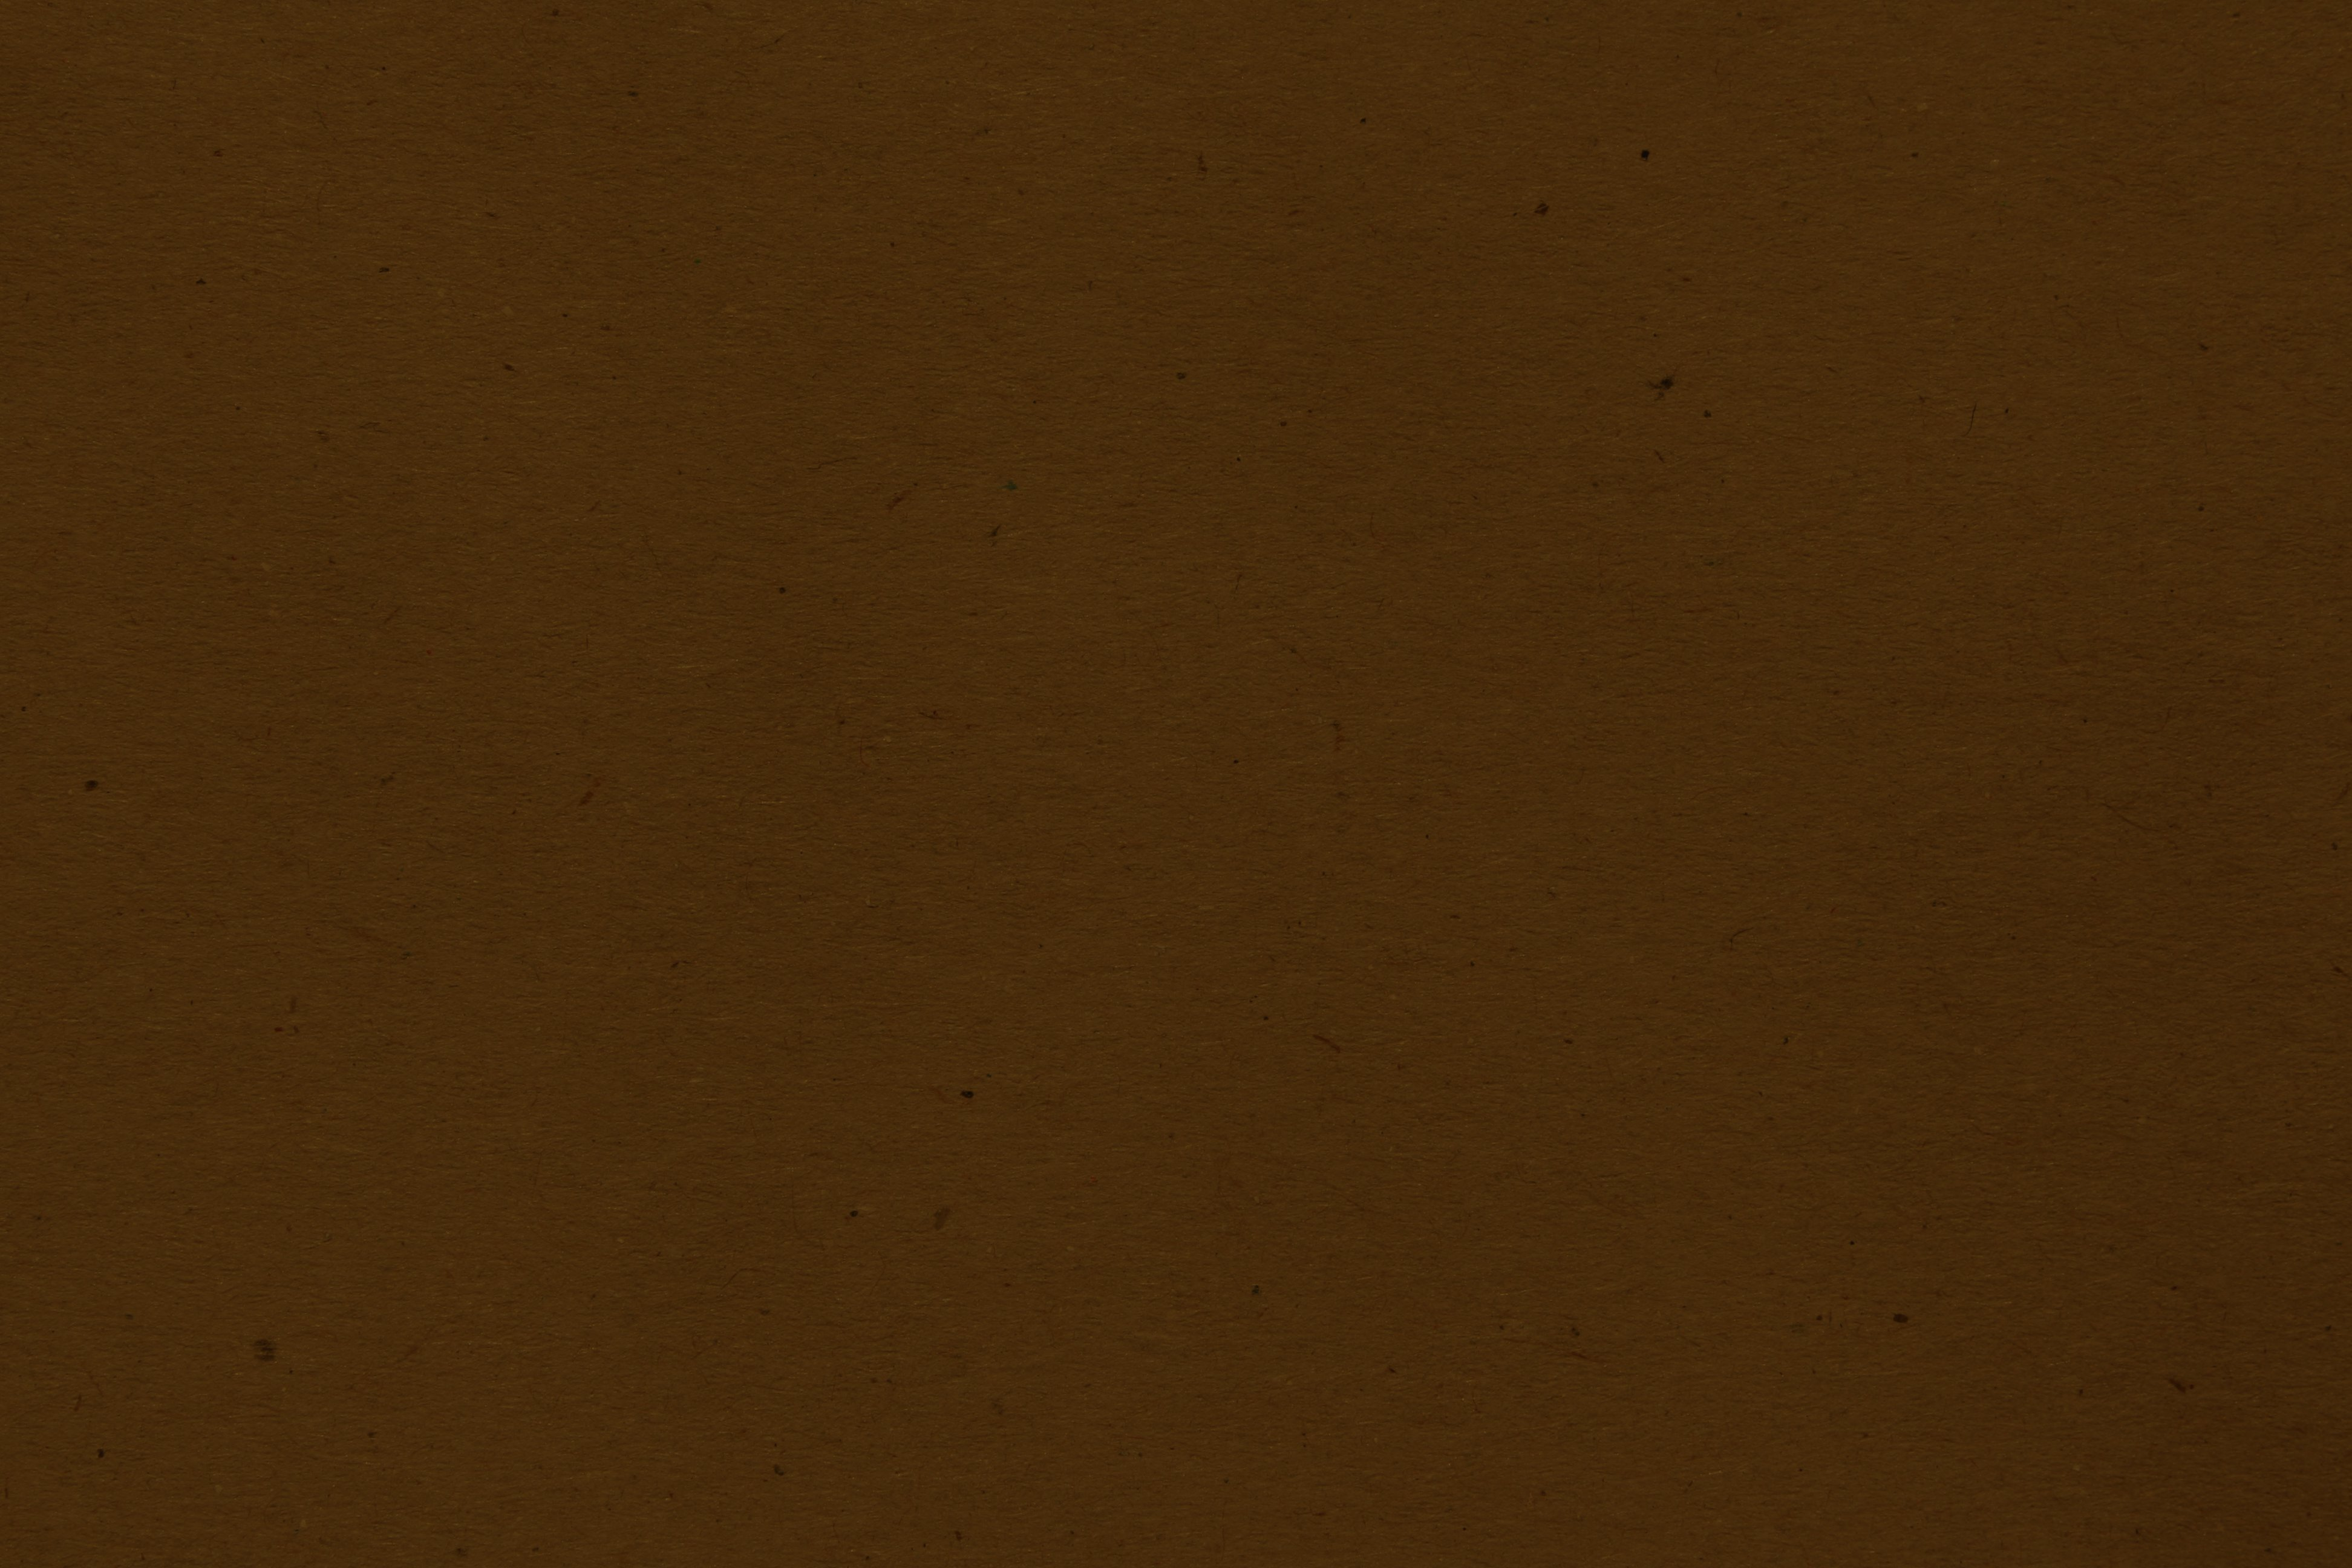 brown wallpapers high quality download free